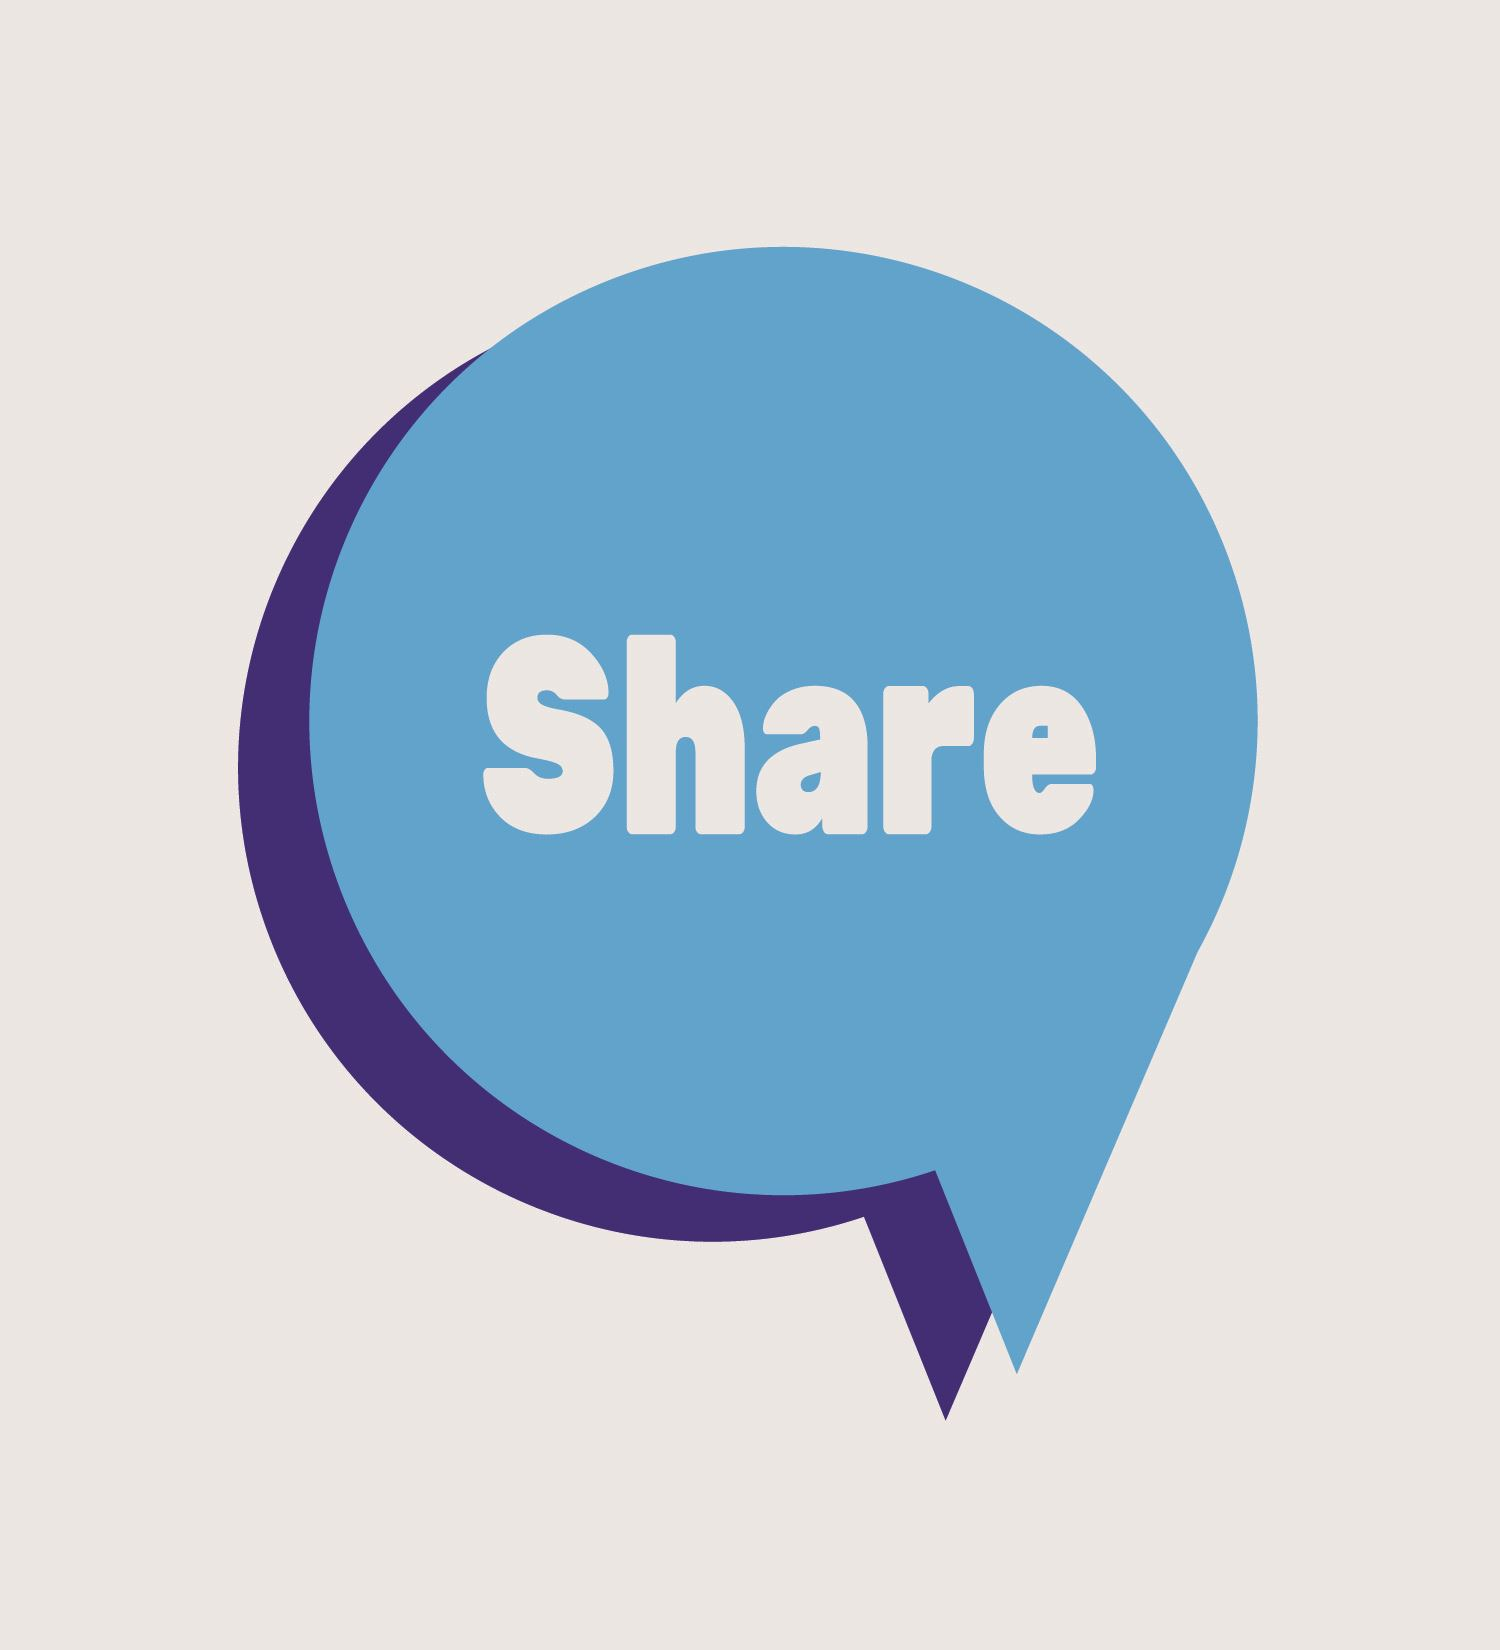 Cartoon image of a thought bubble with the word 'share' displayed inside